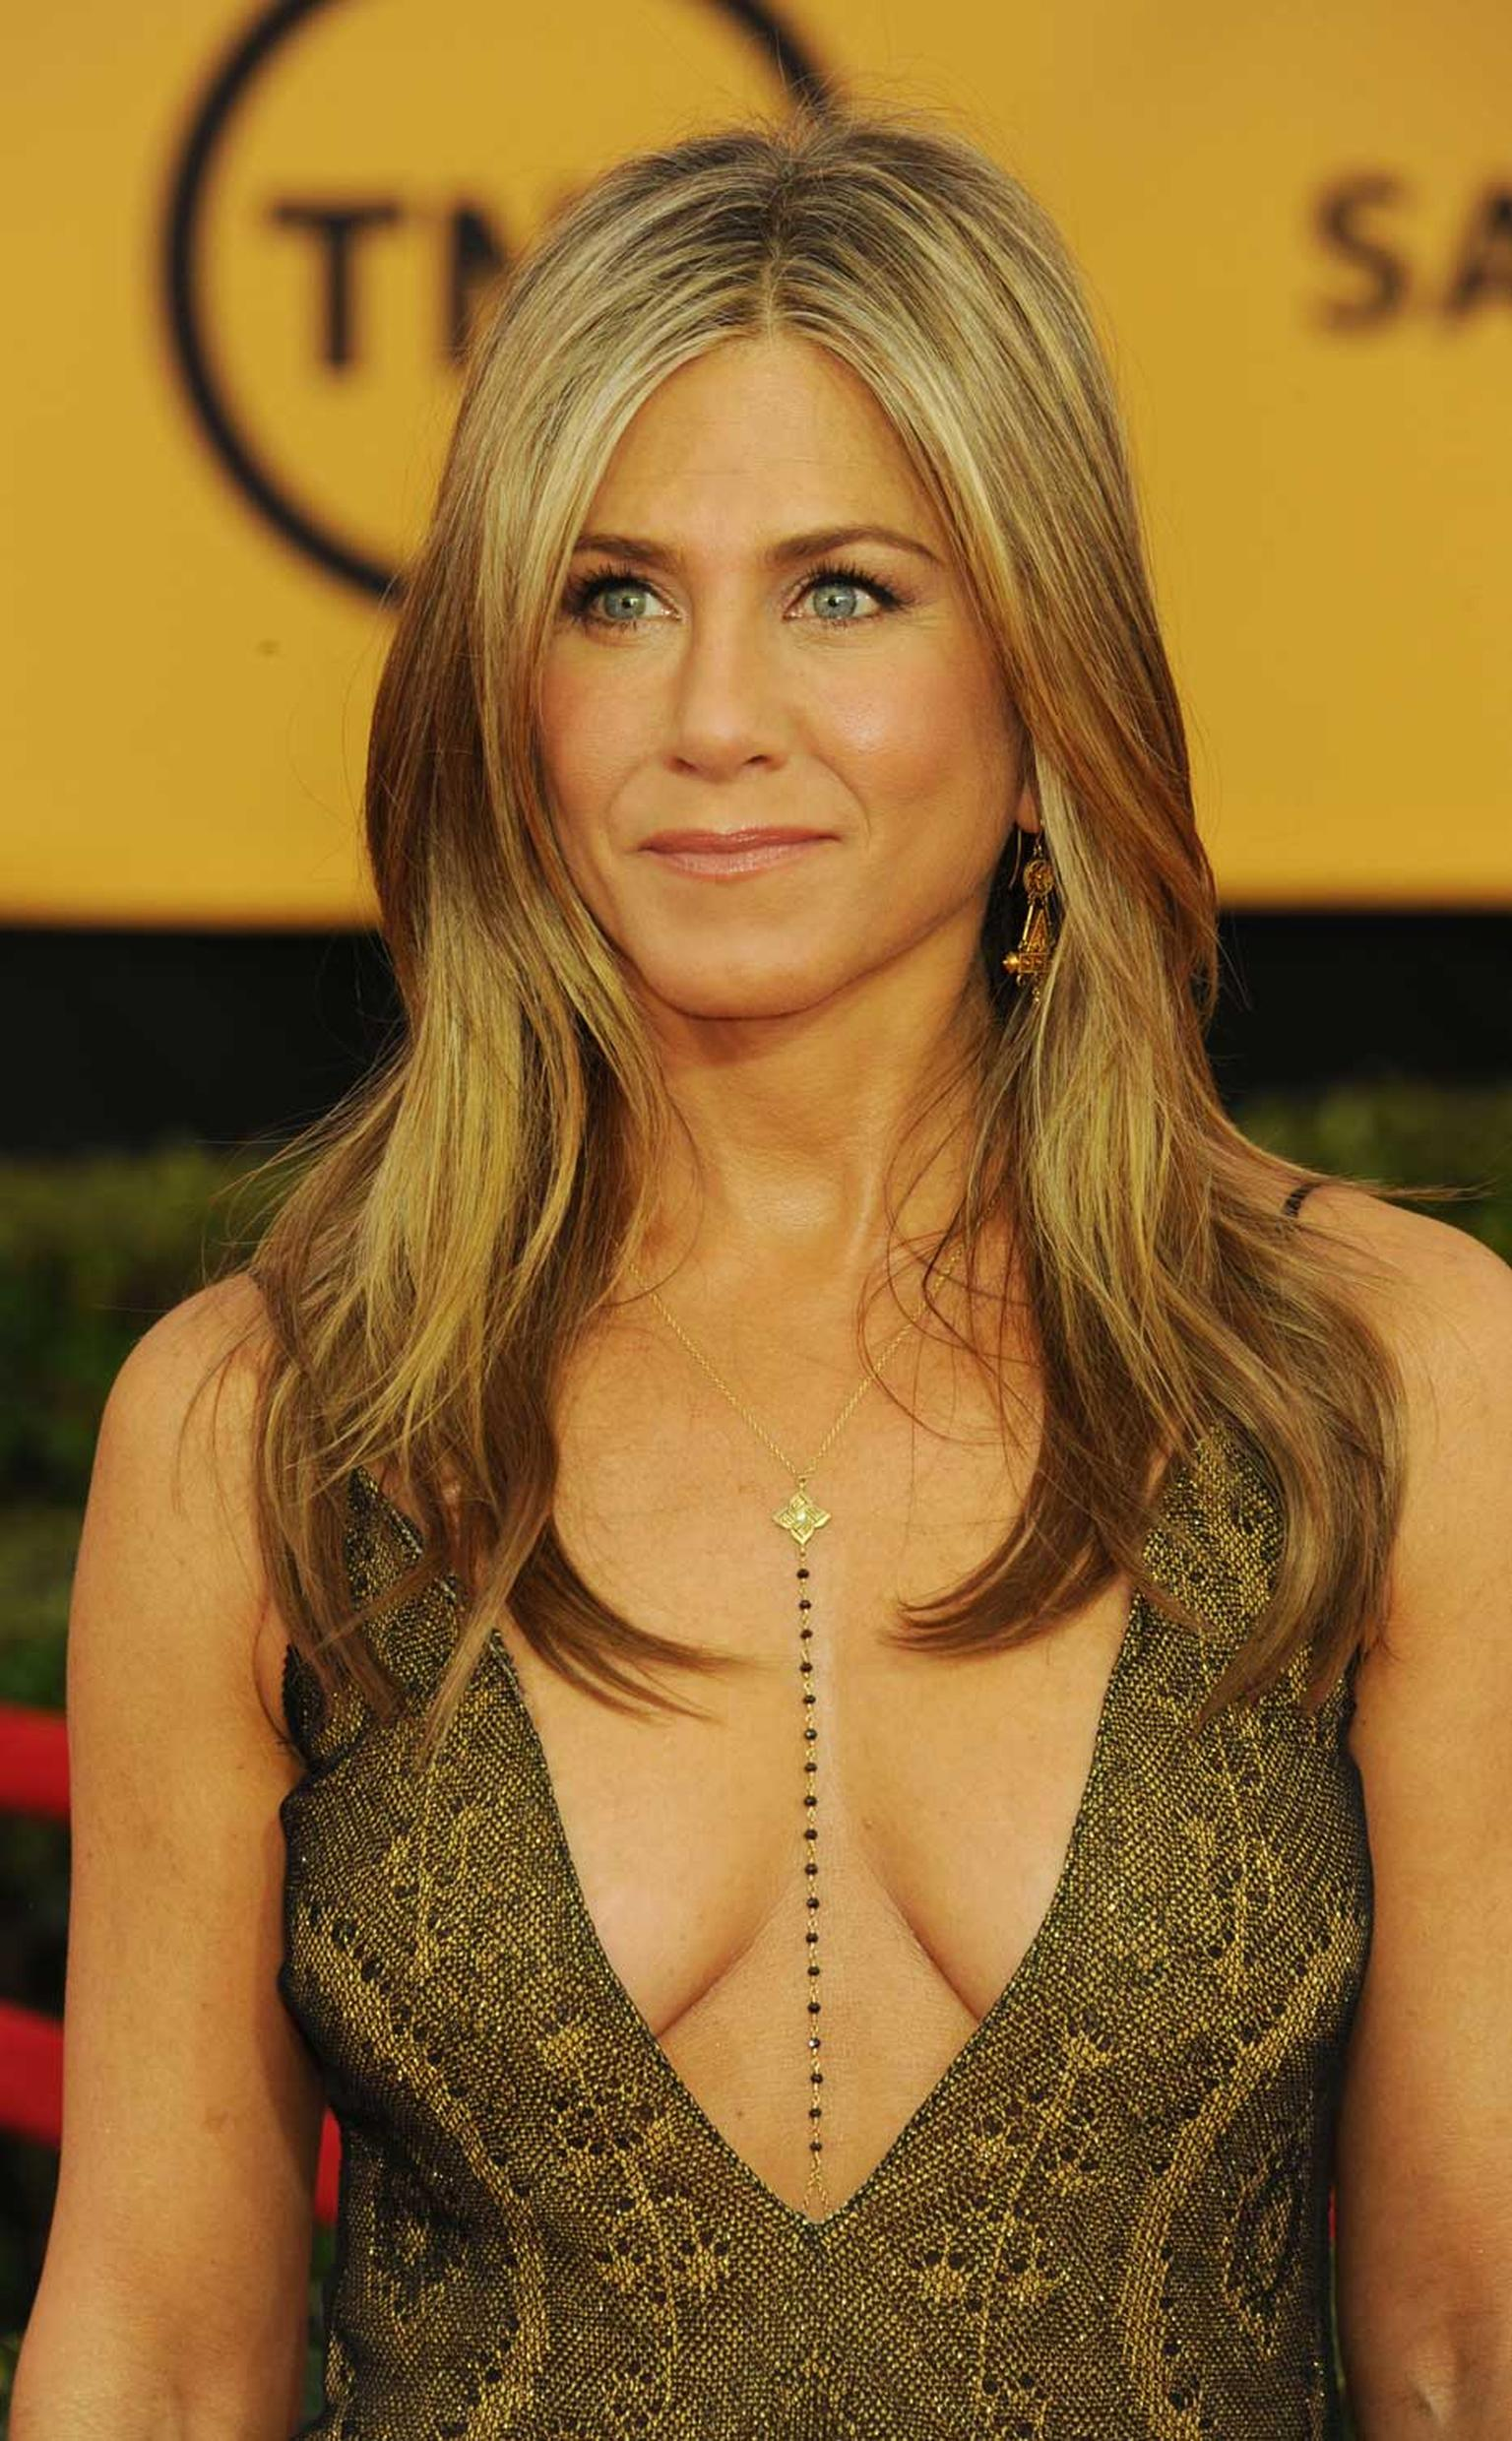 Jennifer Aniston, who was nominated for Outstanding Performance by a Female Actor in a Leading Role, wore gold Fred Leighton bracelets and a black diamond body chain by Amrit Jewelry.